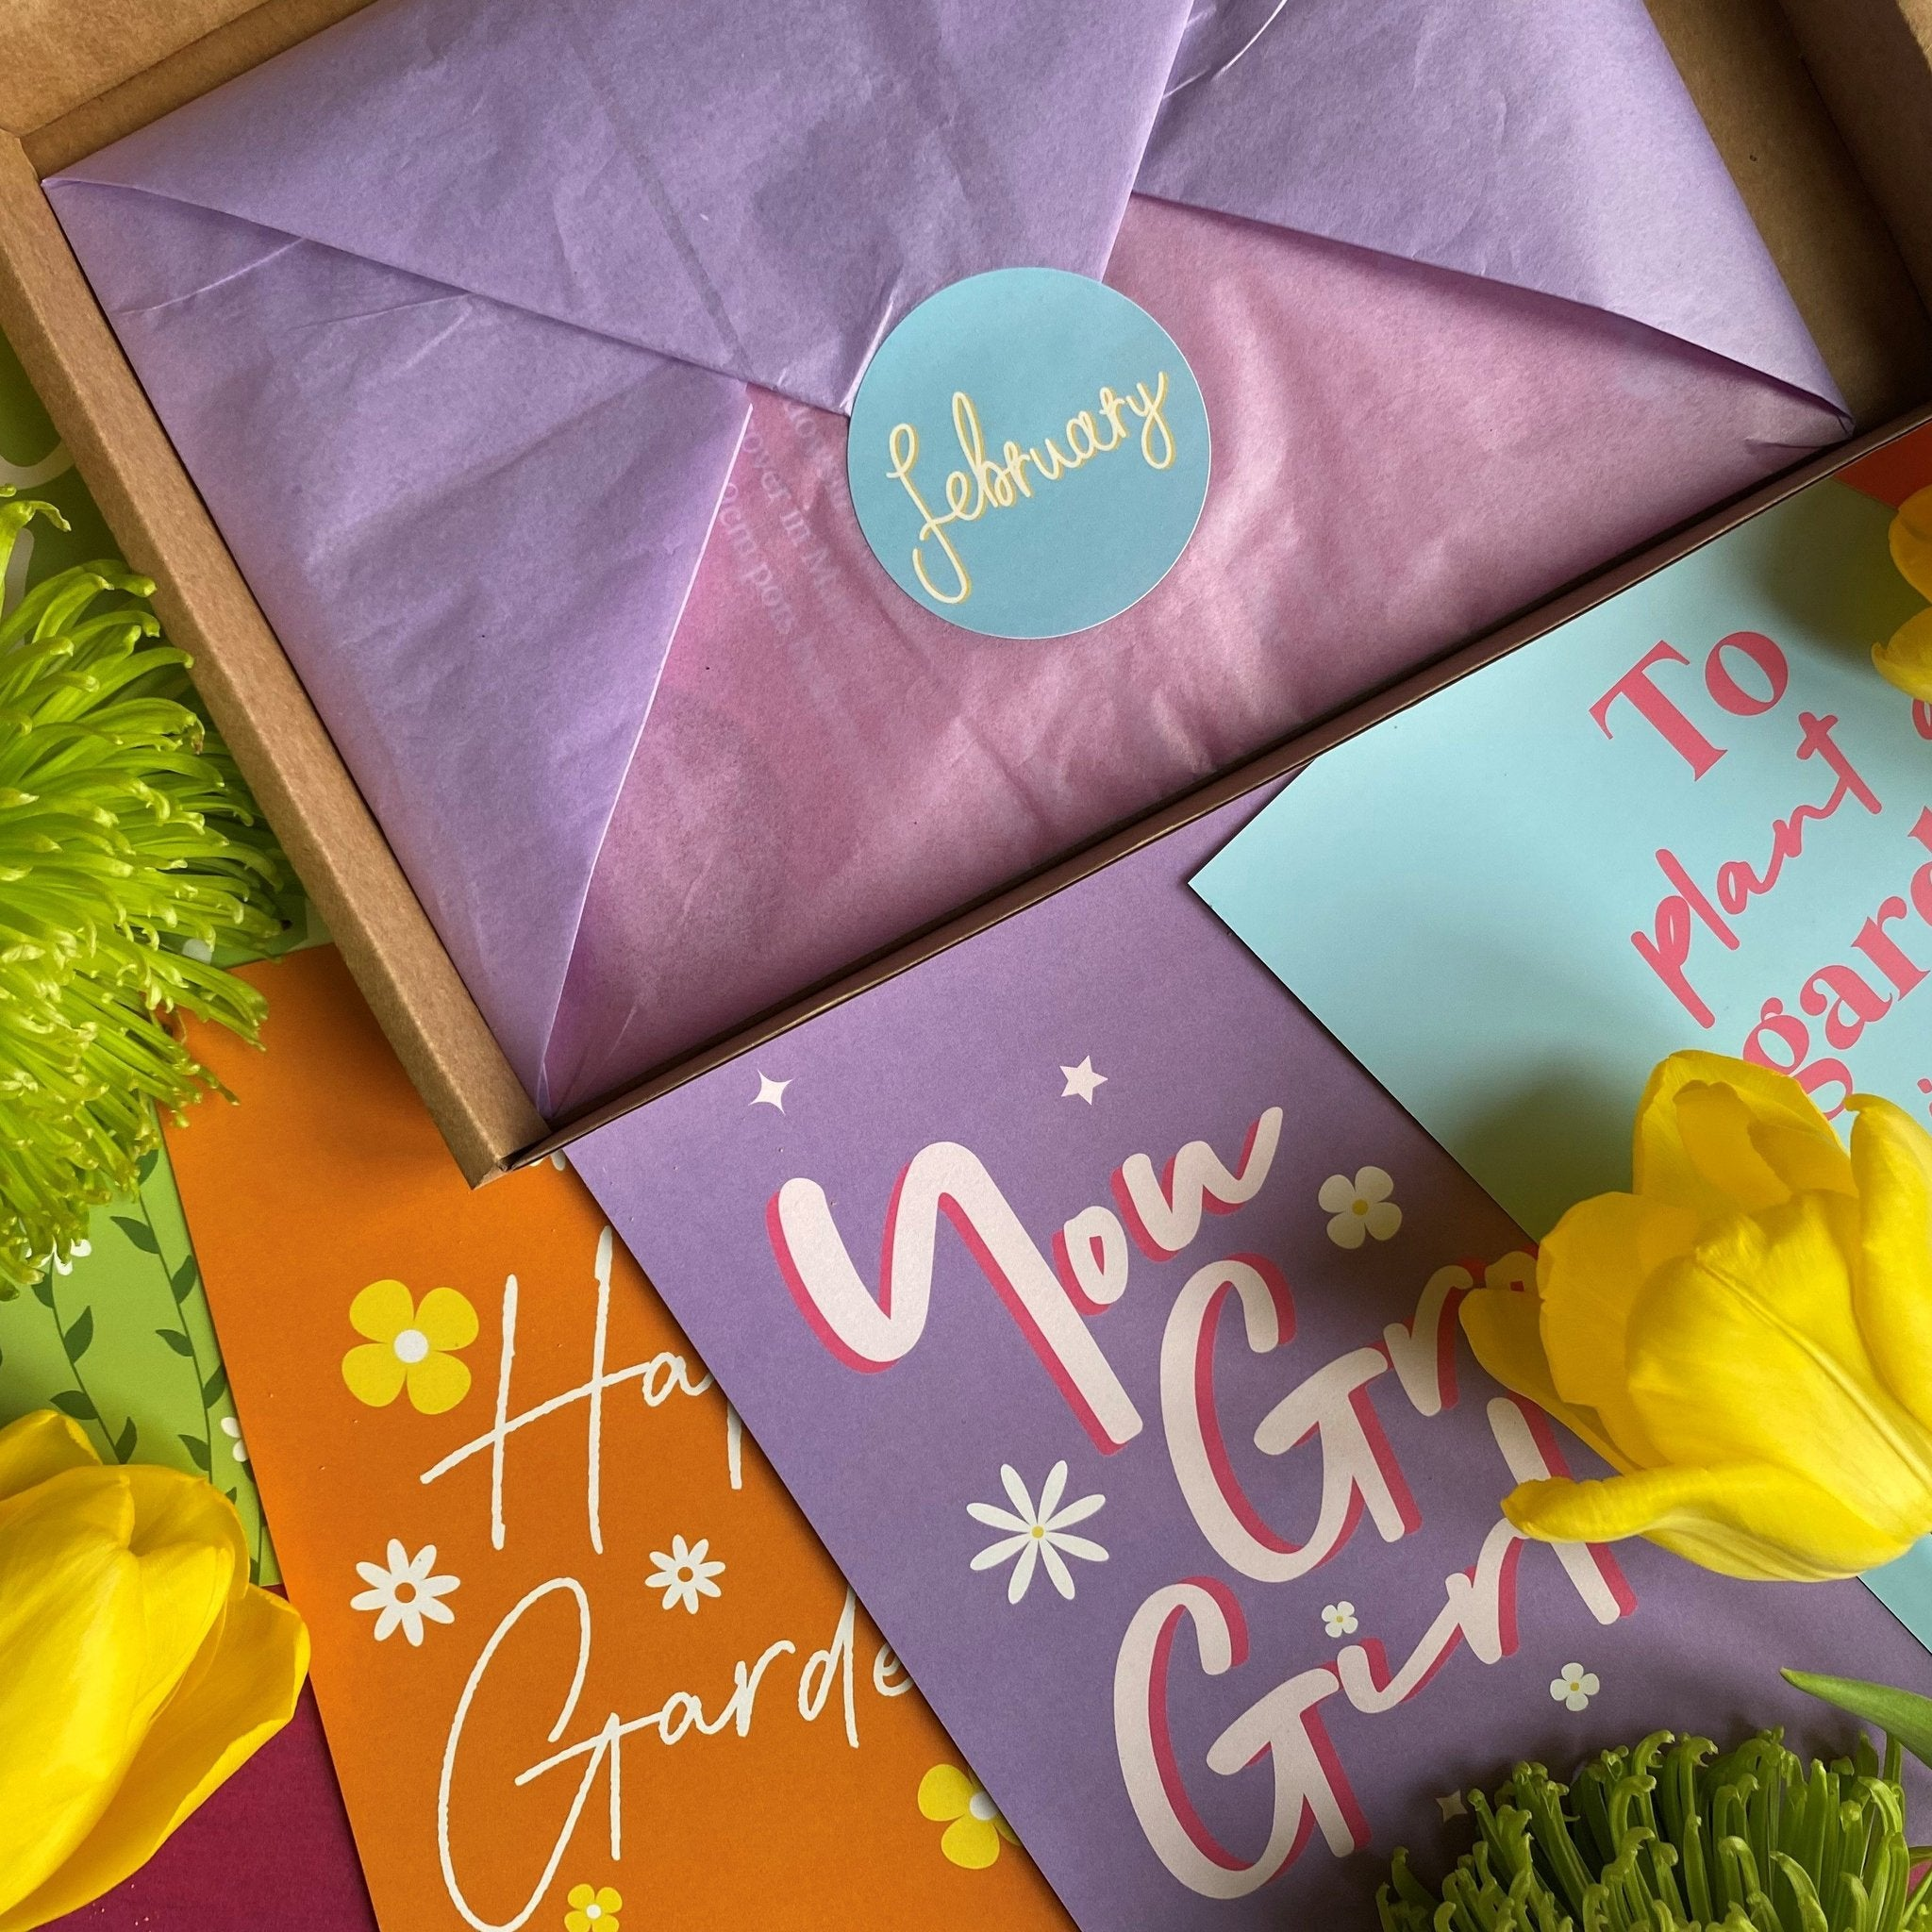 Monthly seed and bulb subscription box by The Rose Press Garden